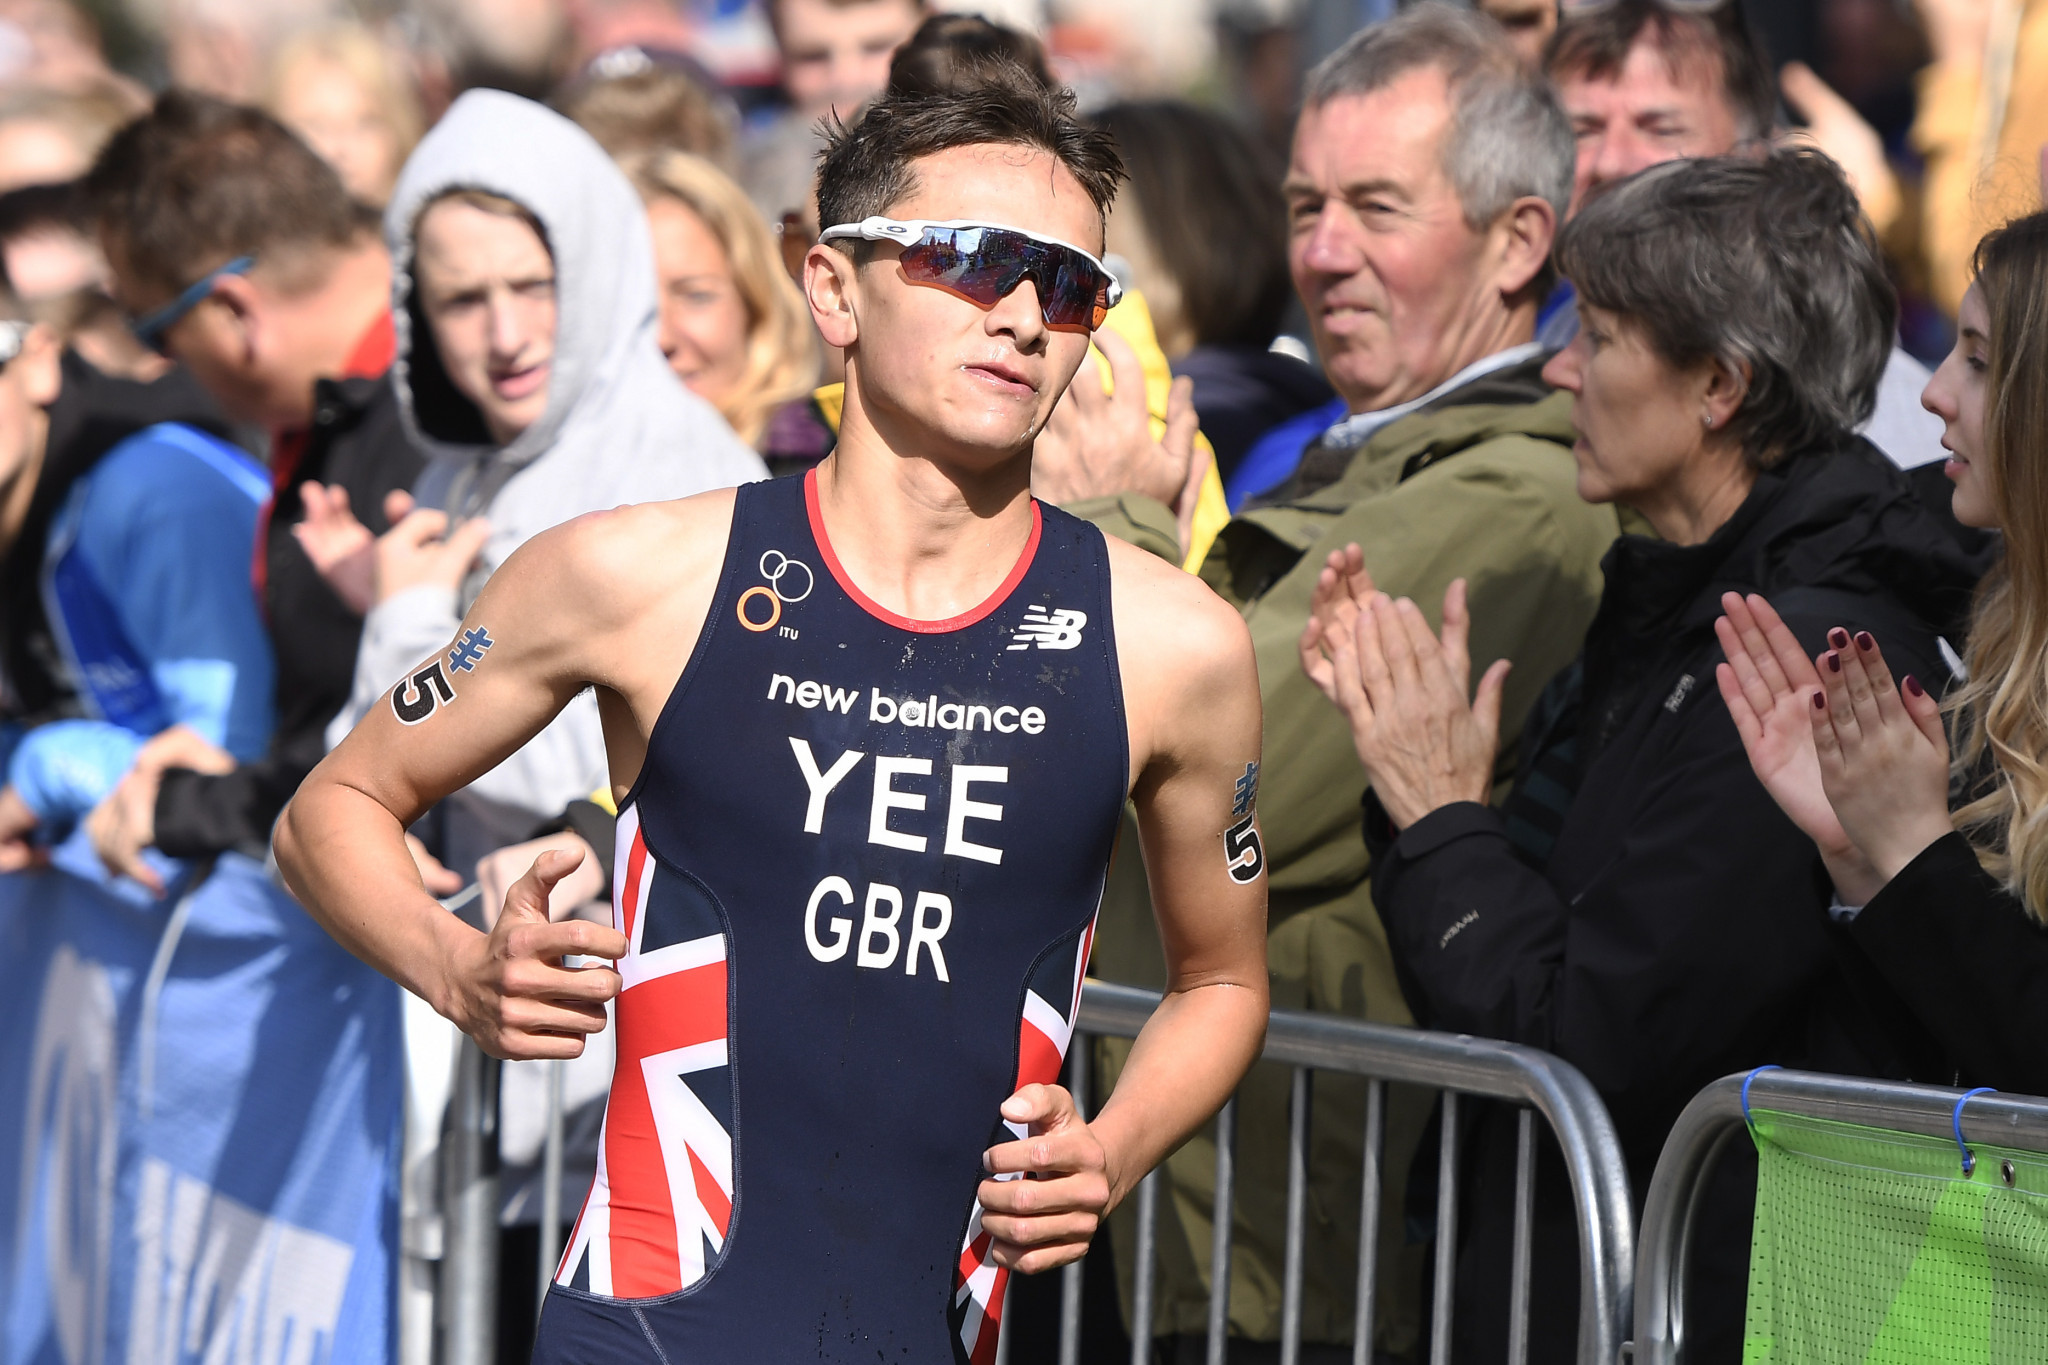 Alex Yee has been given Britain's other spot in the men's triathlon at Tokyo 2020 and will take his place alongside Alistair Brownlee's brother Jonny ©Getty Images